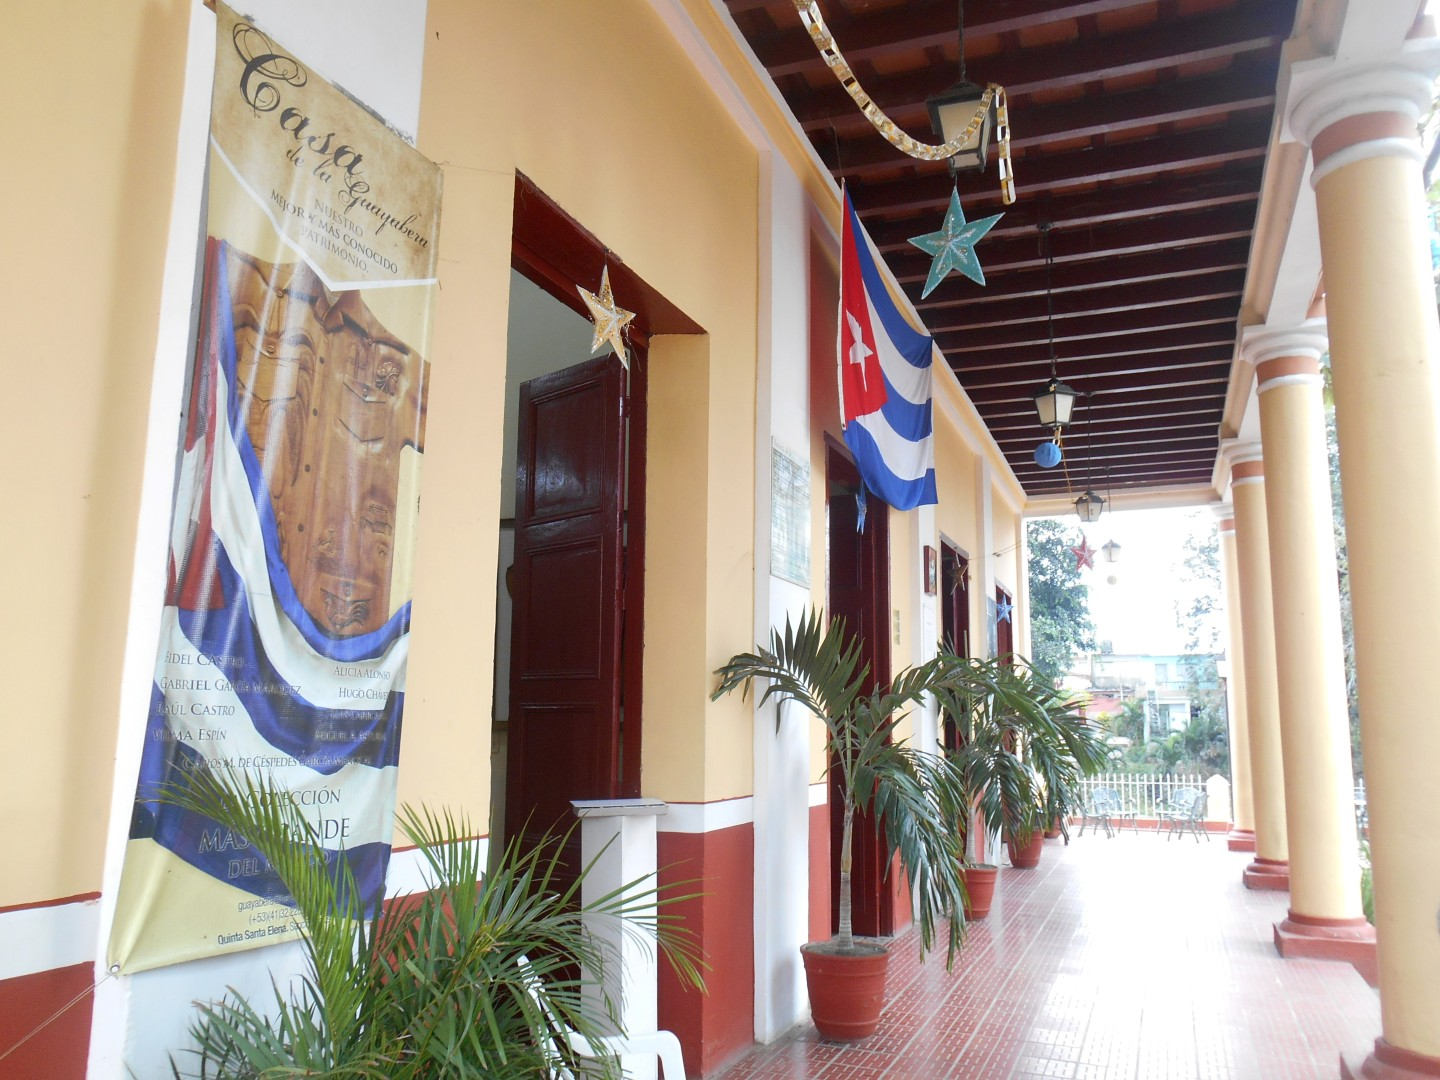 The guayabera museum was opened in the former Quinta Santa Elena Restaurant. Photo: A. del Valle.